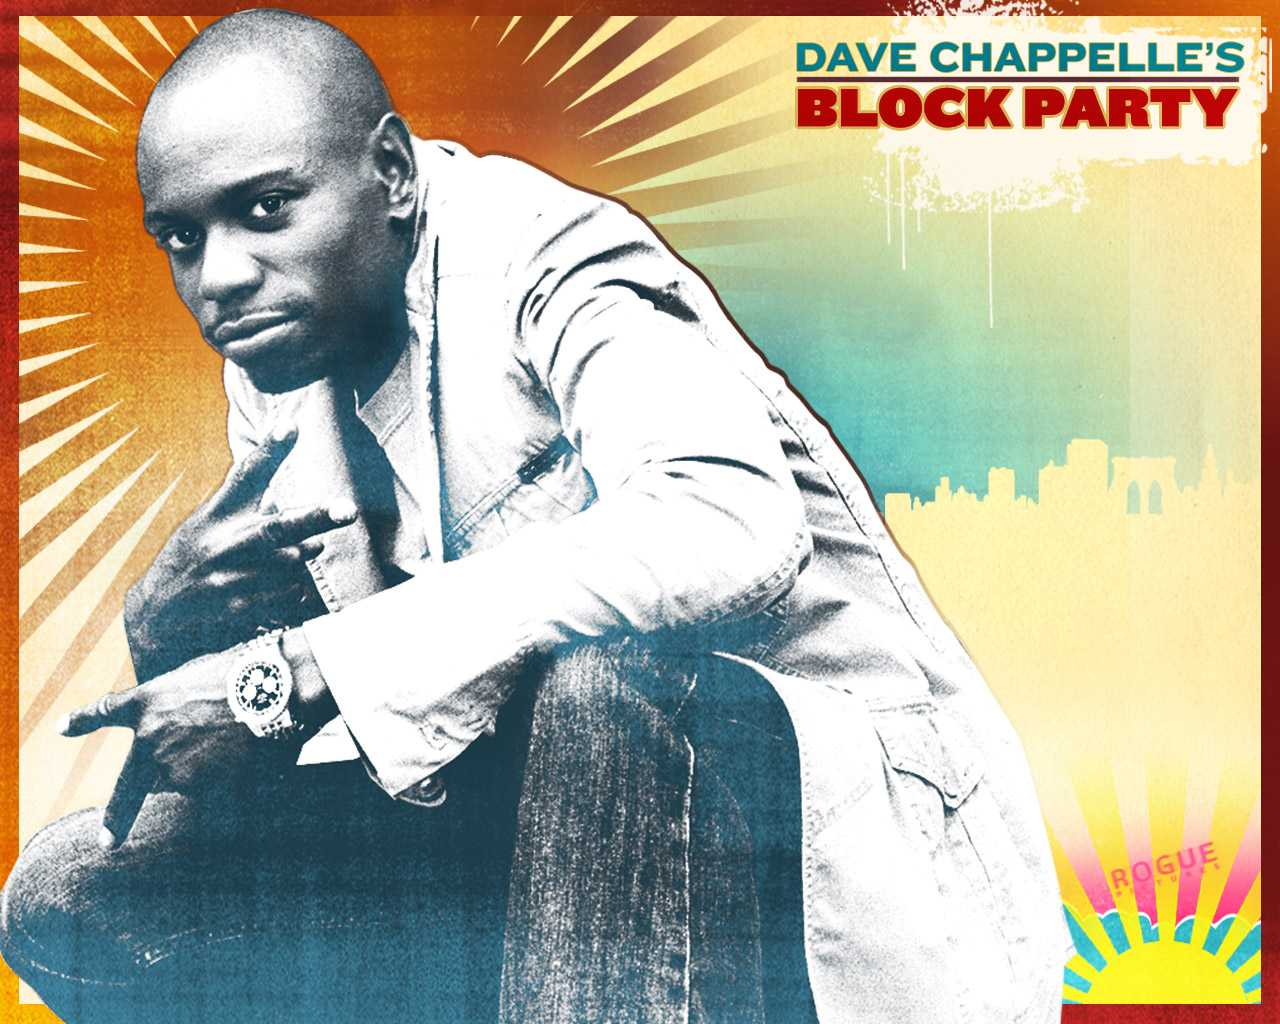 Dave Chappelle's Brooklyn Block Party Returns To NYC